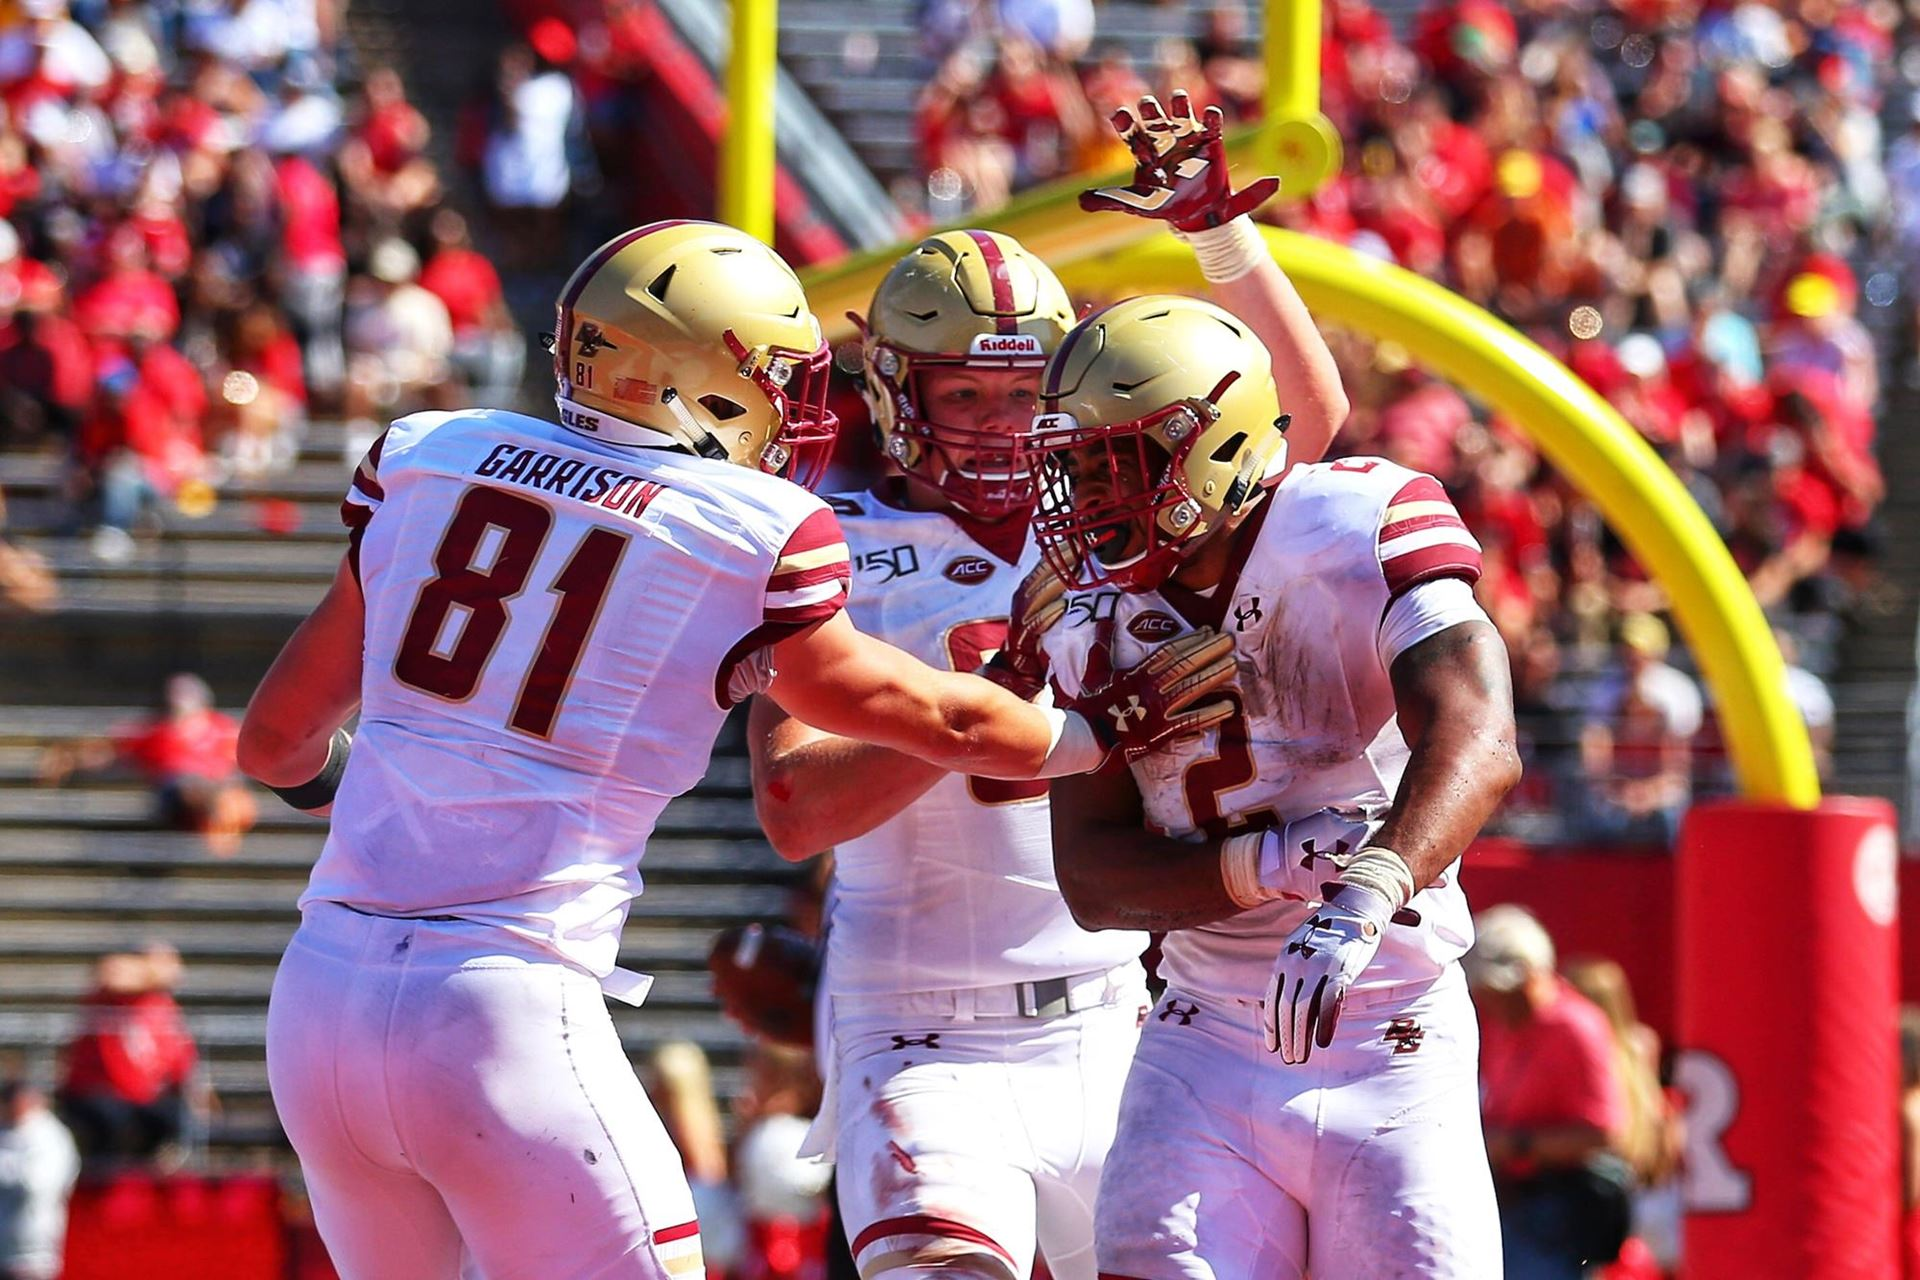 BC Takes Down Rutgers, 30-16